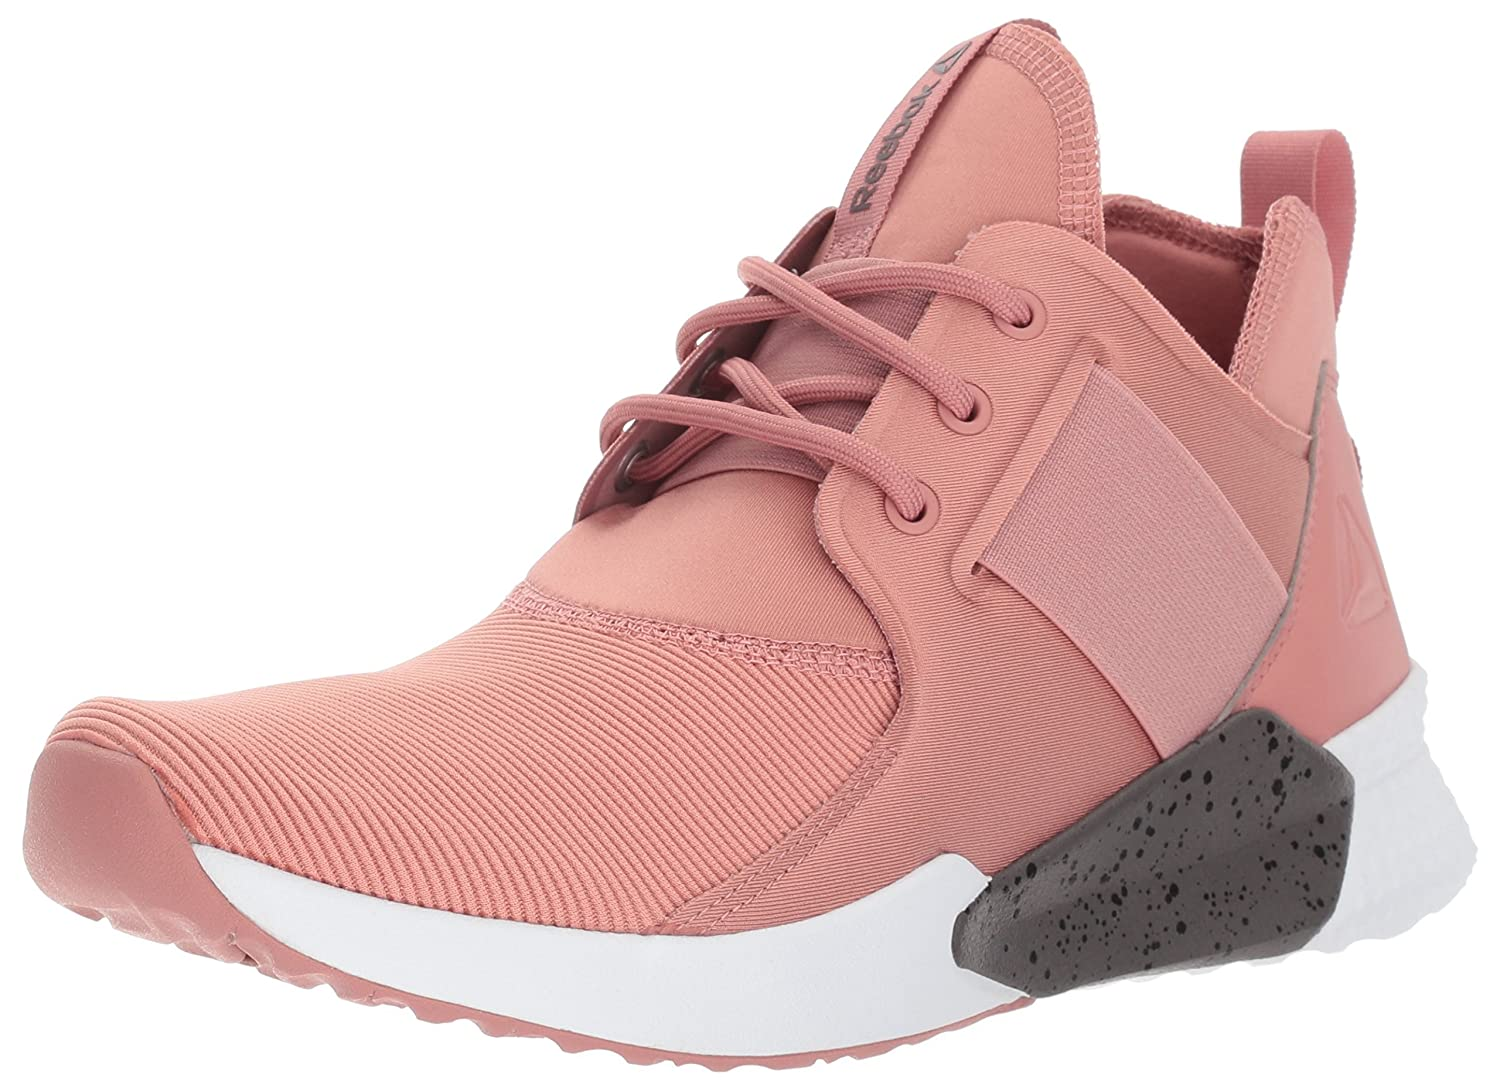 Reebok Women's Guresu 1.0 Running Shoe B01MY4Z0MB 9.5 B(M) US|Sandy Rose/Burnt Sienna/Urban Grey/White/Black